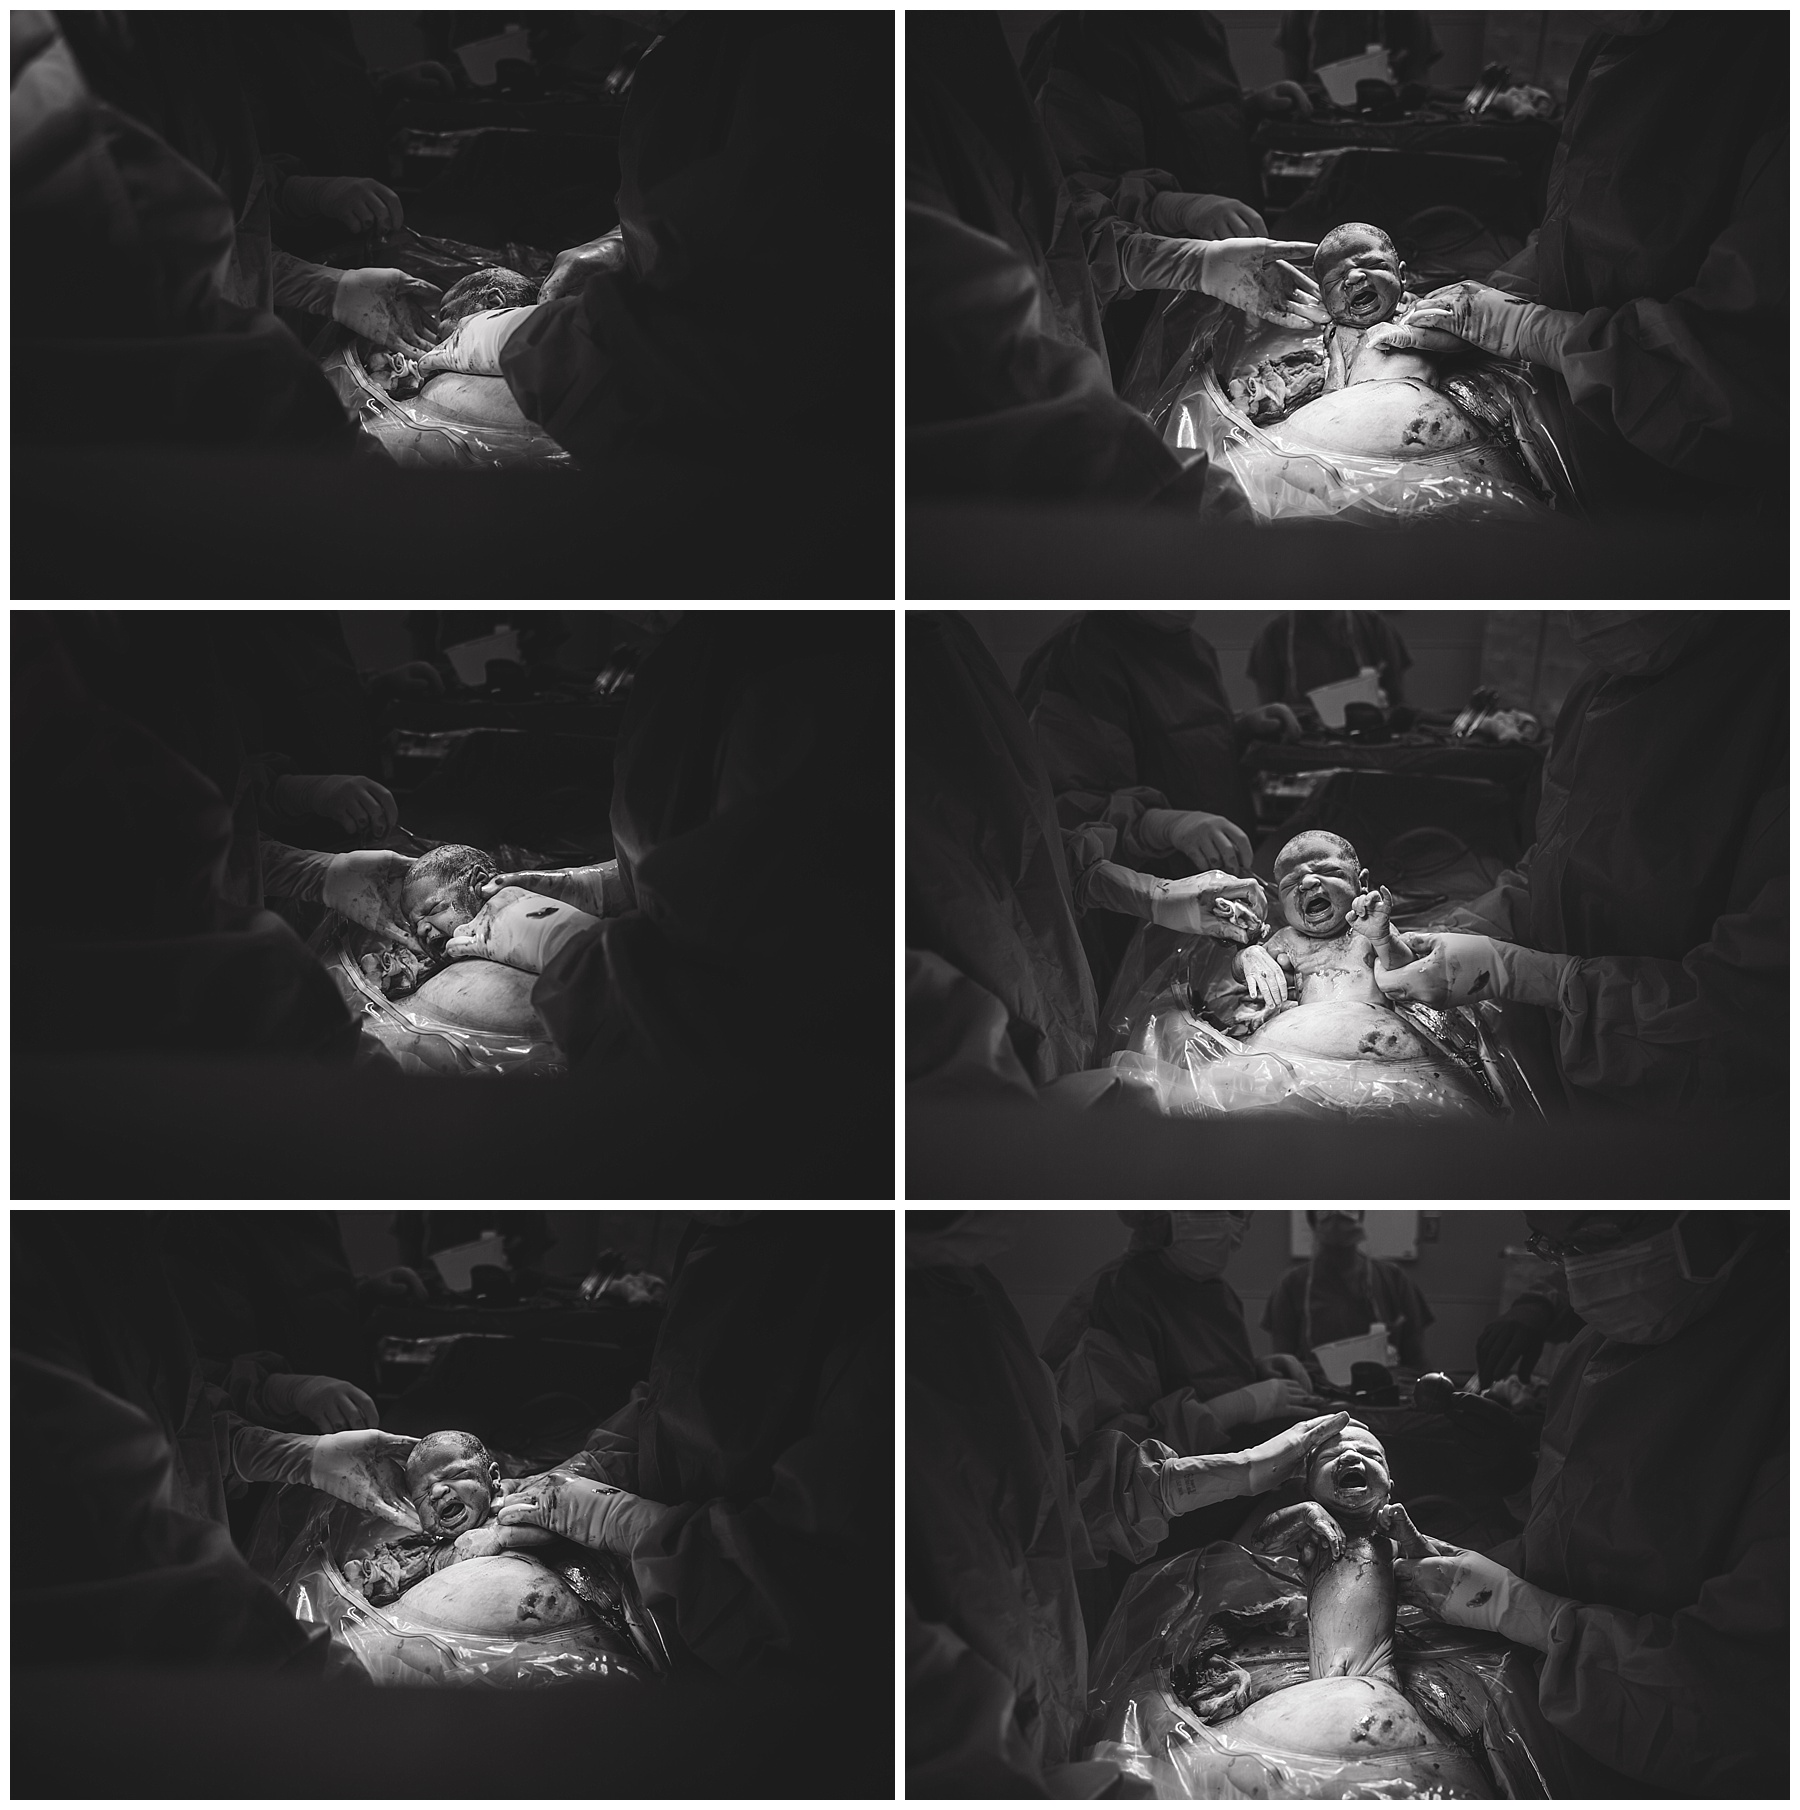 A series of images of a cesarean birth